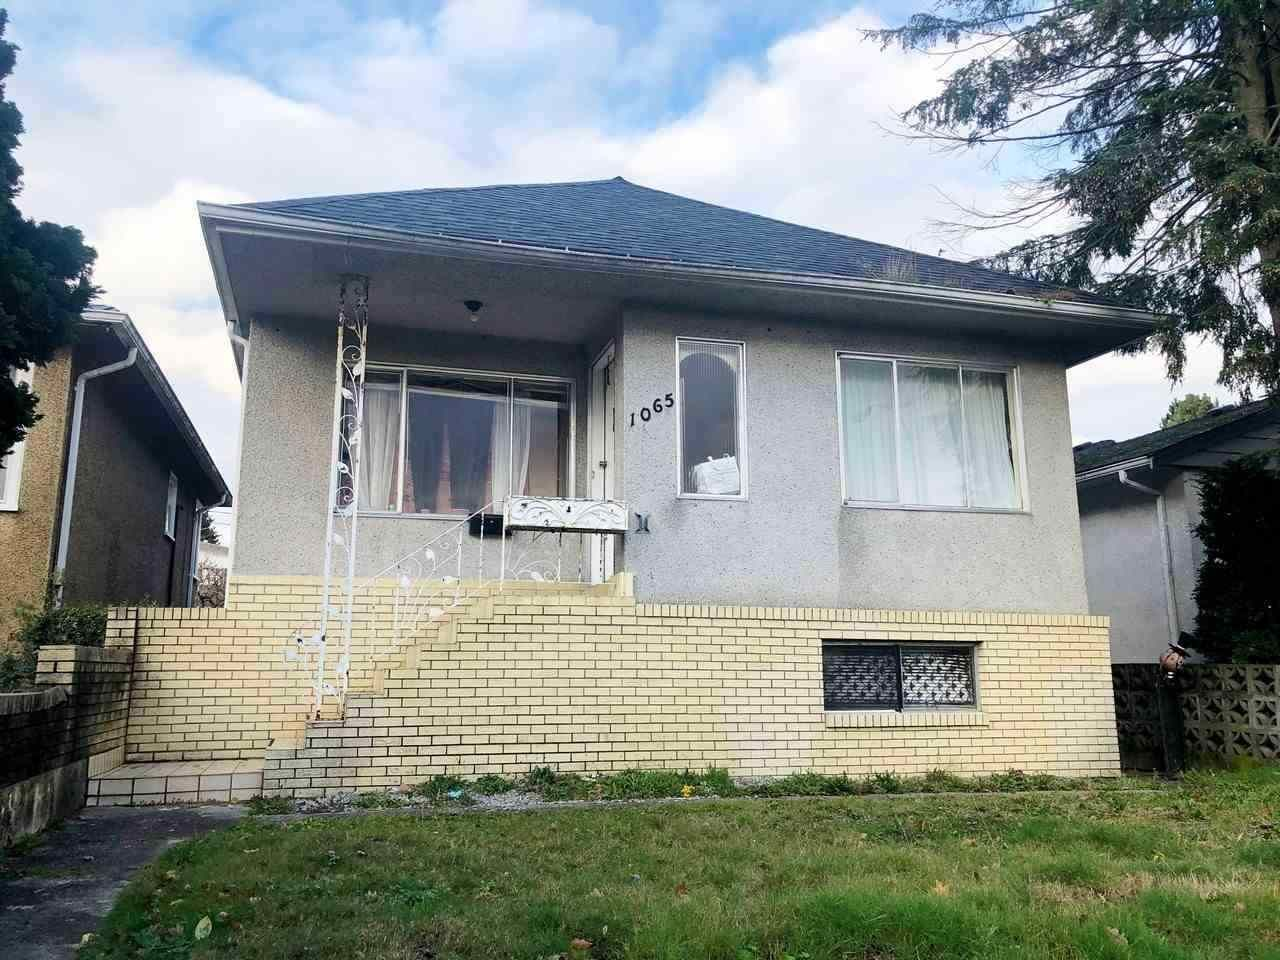 Main Photo: 1065 E 56TH Avenue in Vancouver: South Vancouver House for sale (Vancouver East)  : MLS®# R2574274